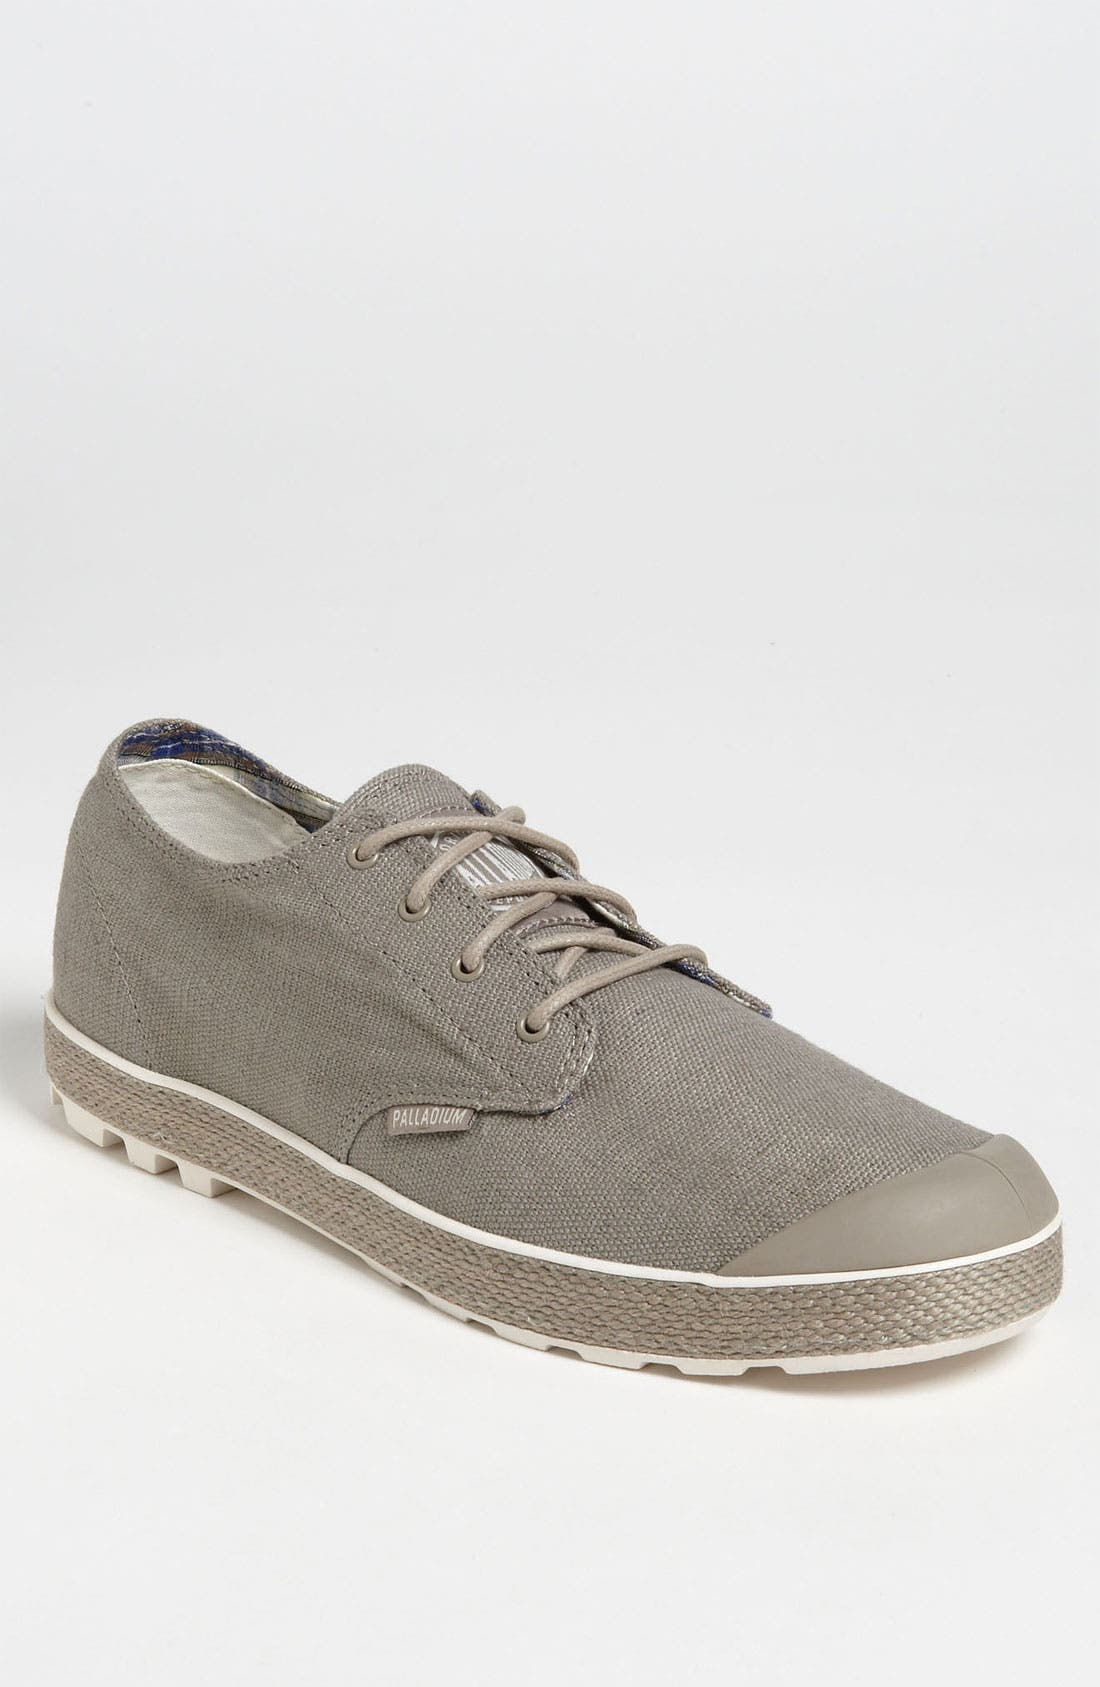 Main Image - Palladium Hemp Blend Sneaker